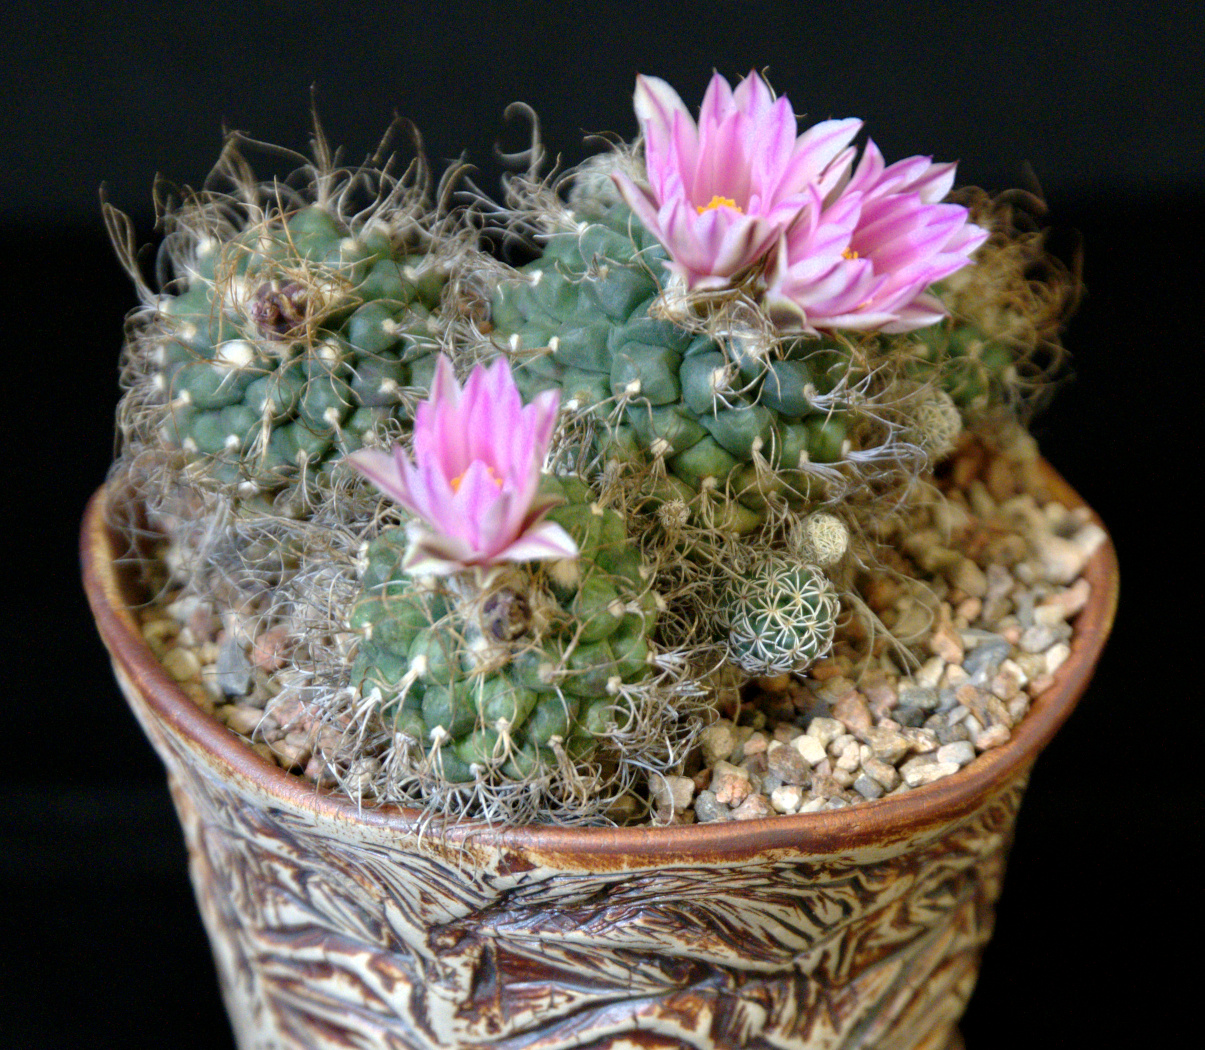 SCCSS 2015 March Winner Open Cactus - Gary Duke - Turbinicarpus pseudomacrochele